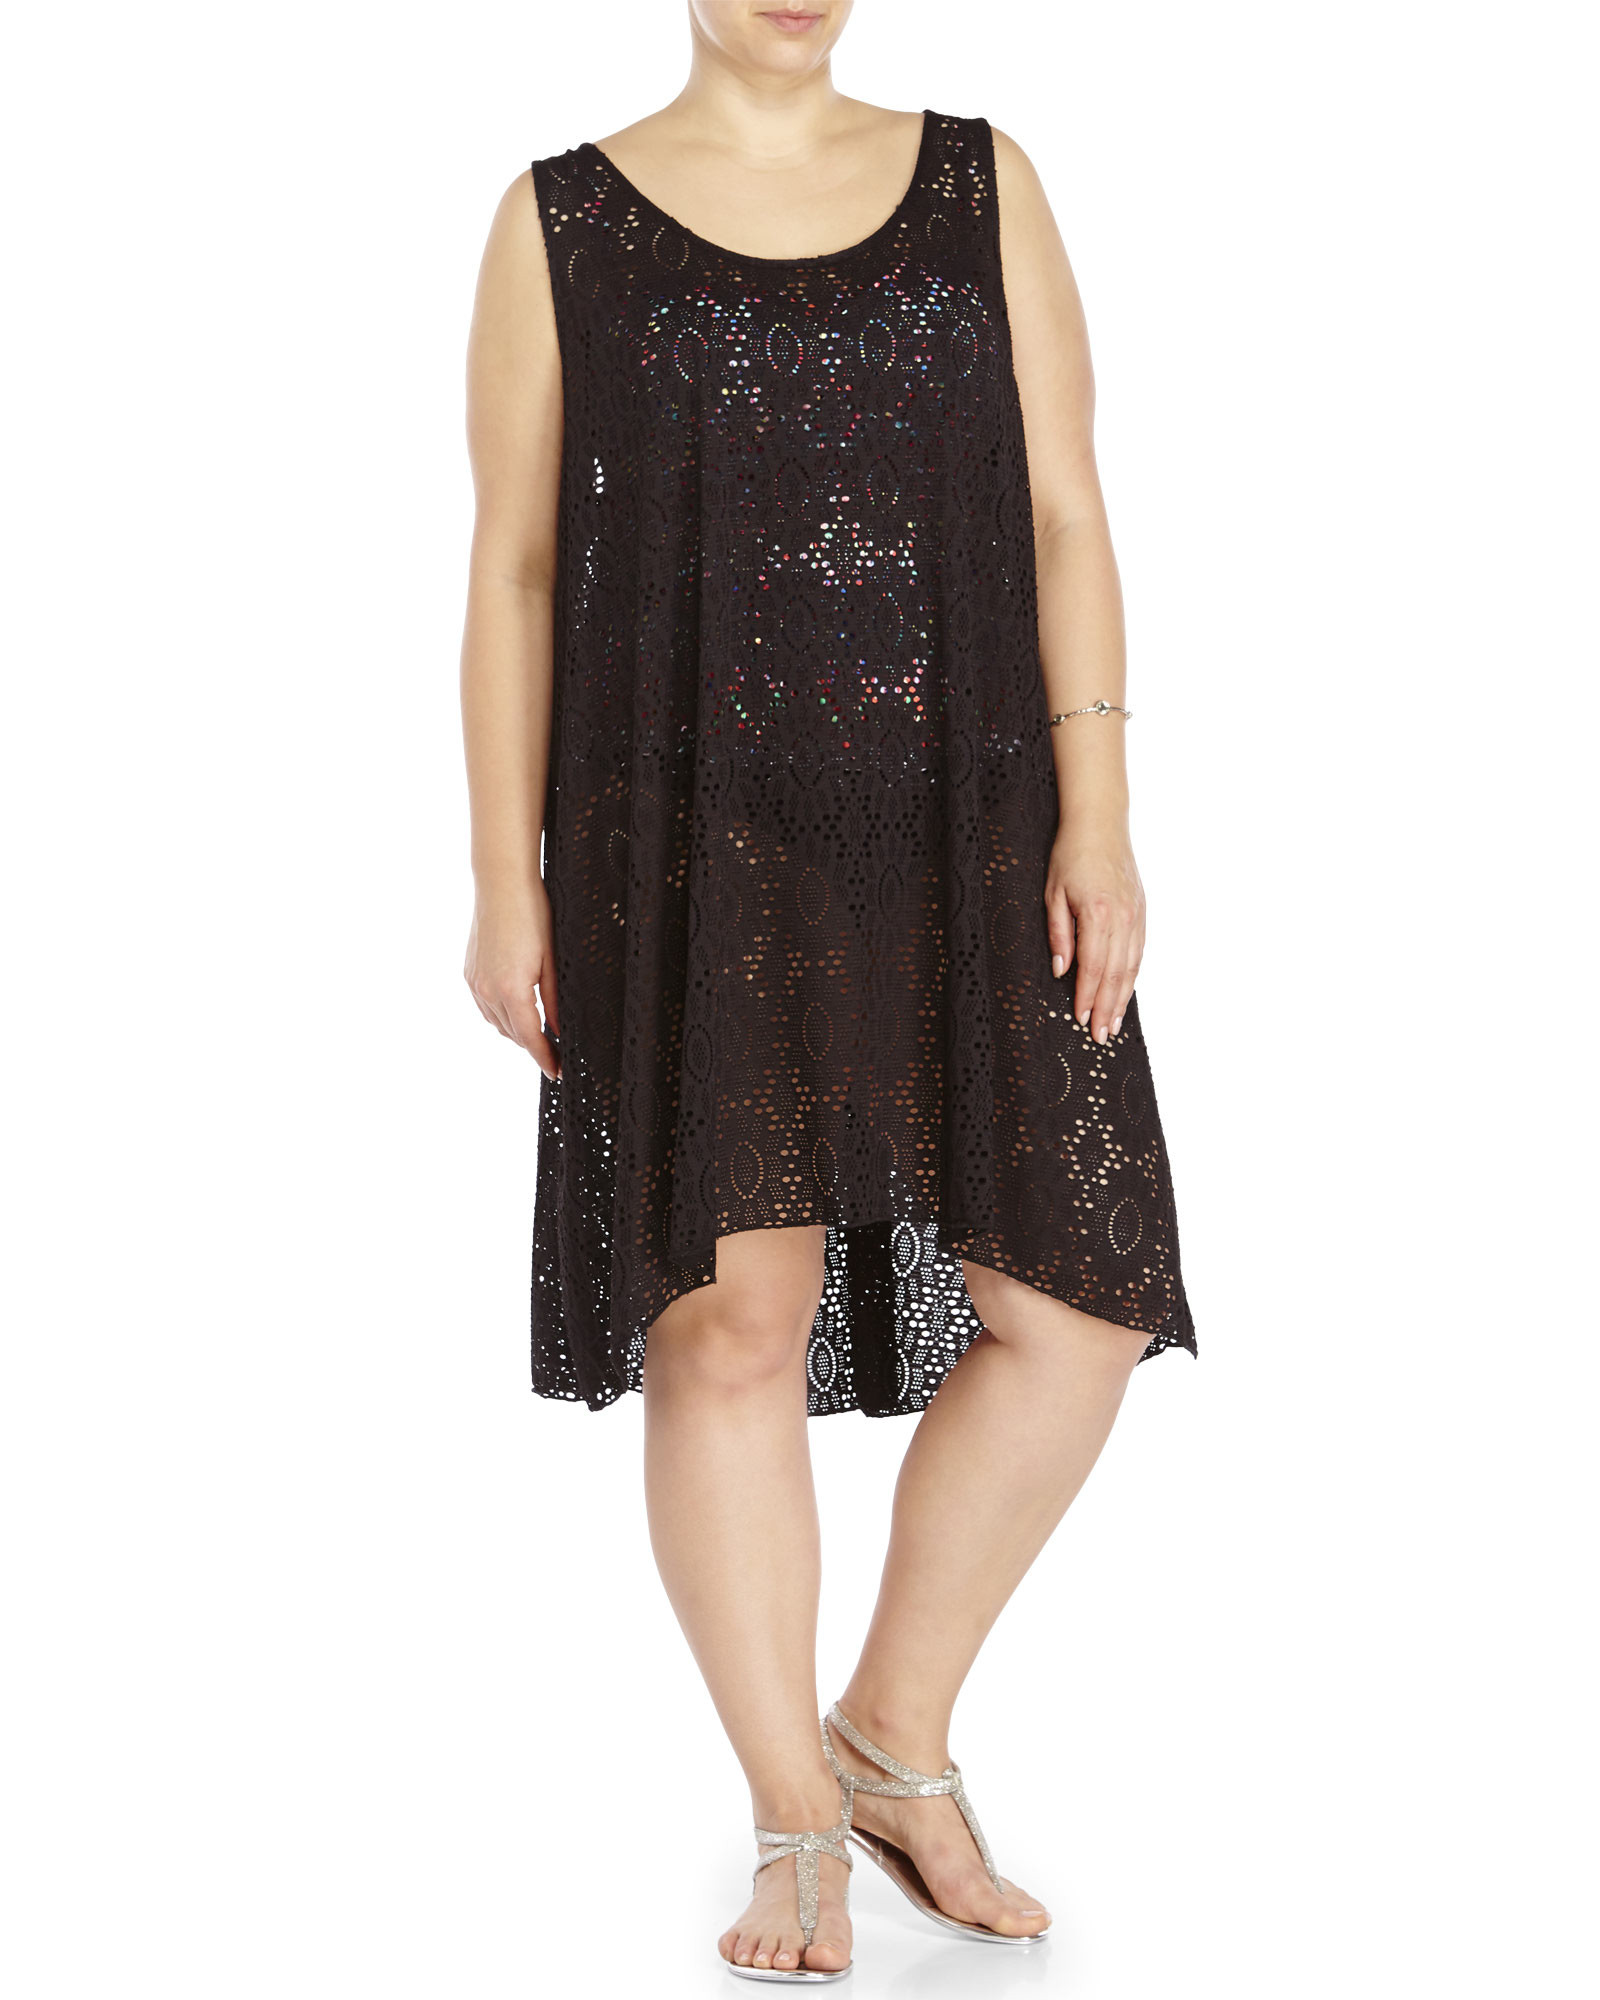 Awesome Gottex Plus Size Black Crochet Cover Up Dress In Black Black Crochet Cover Up Of Superb 42 Images Black Crochet Cover Up